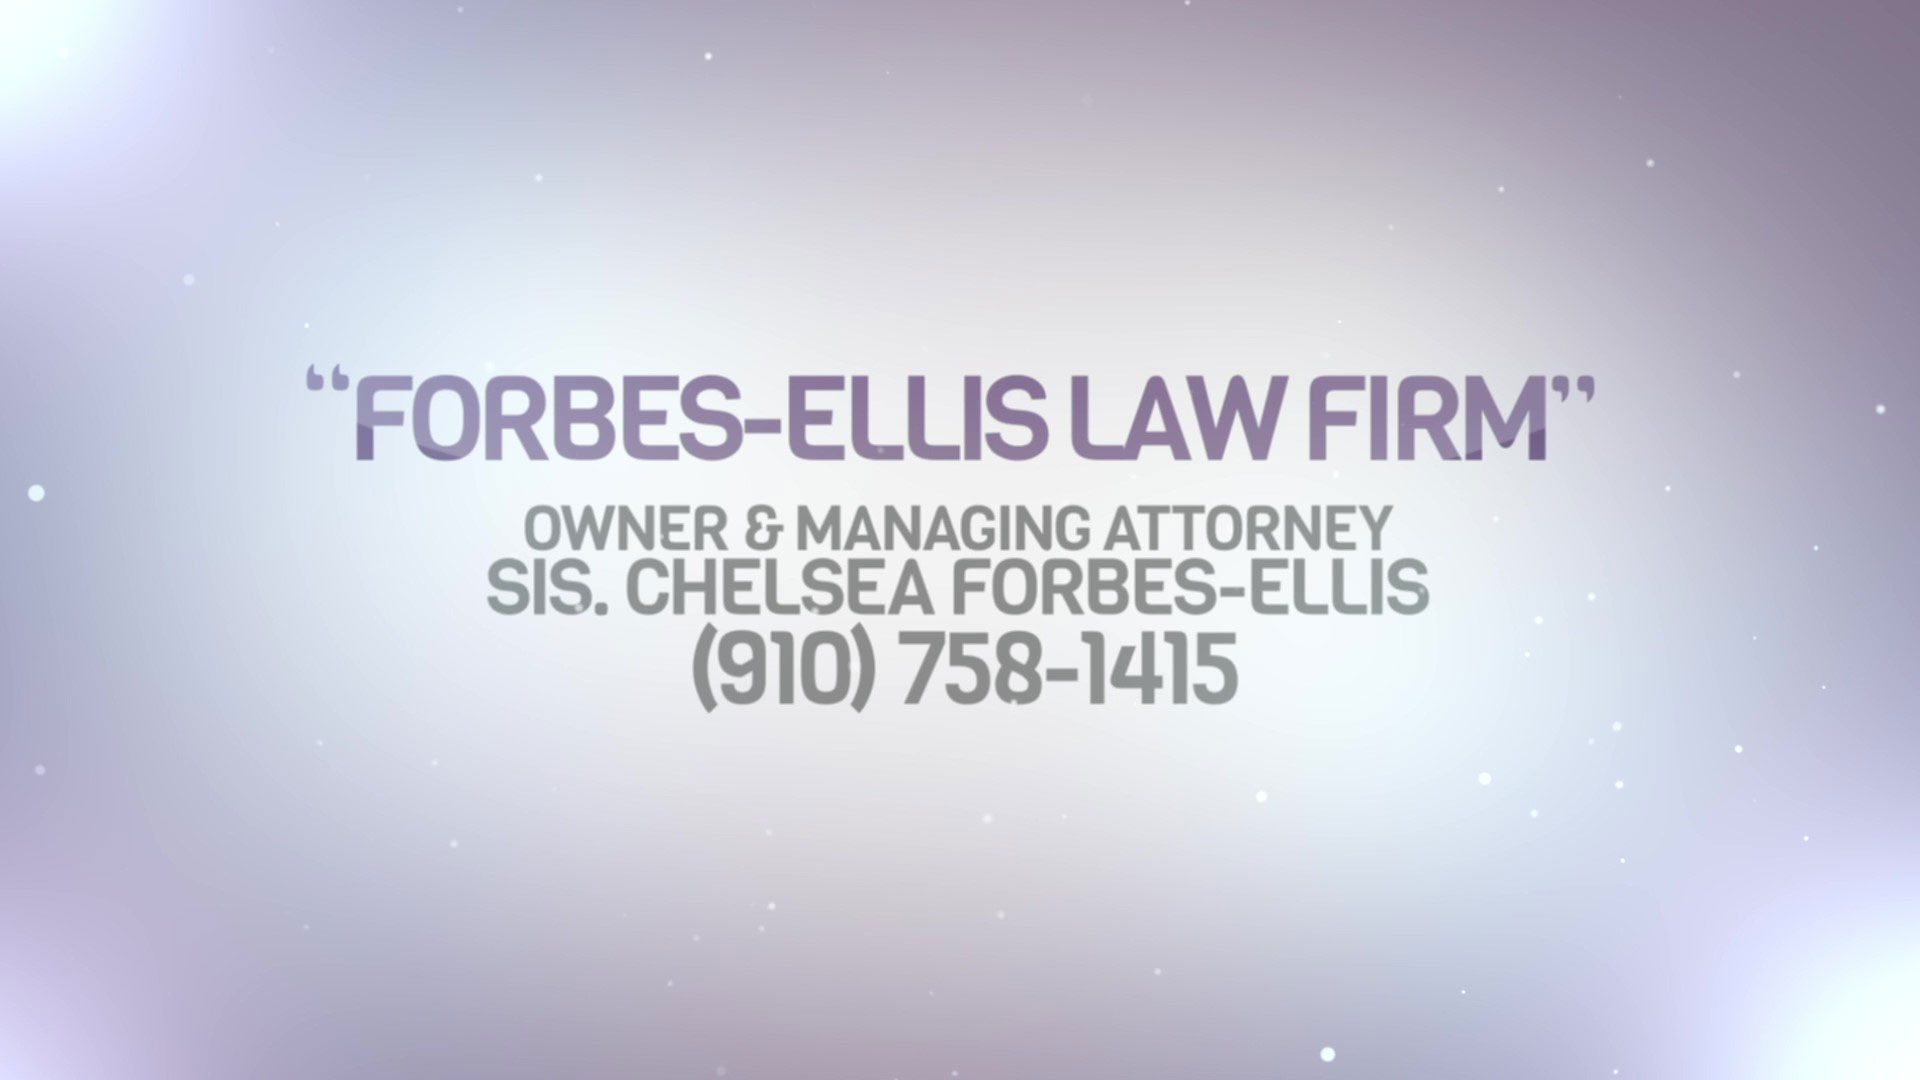 Forbes-Ellis Law Firm